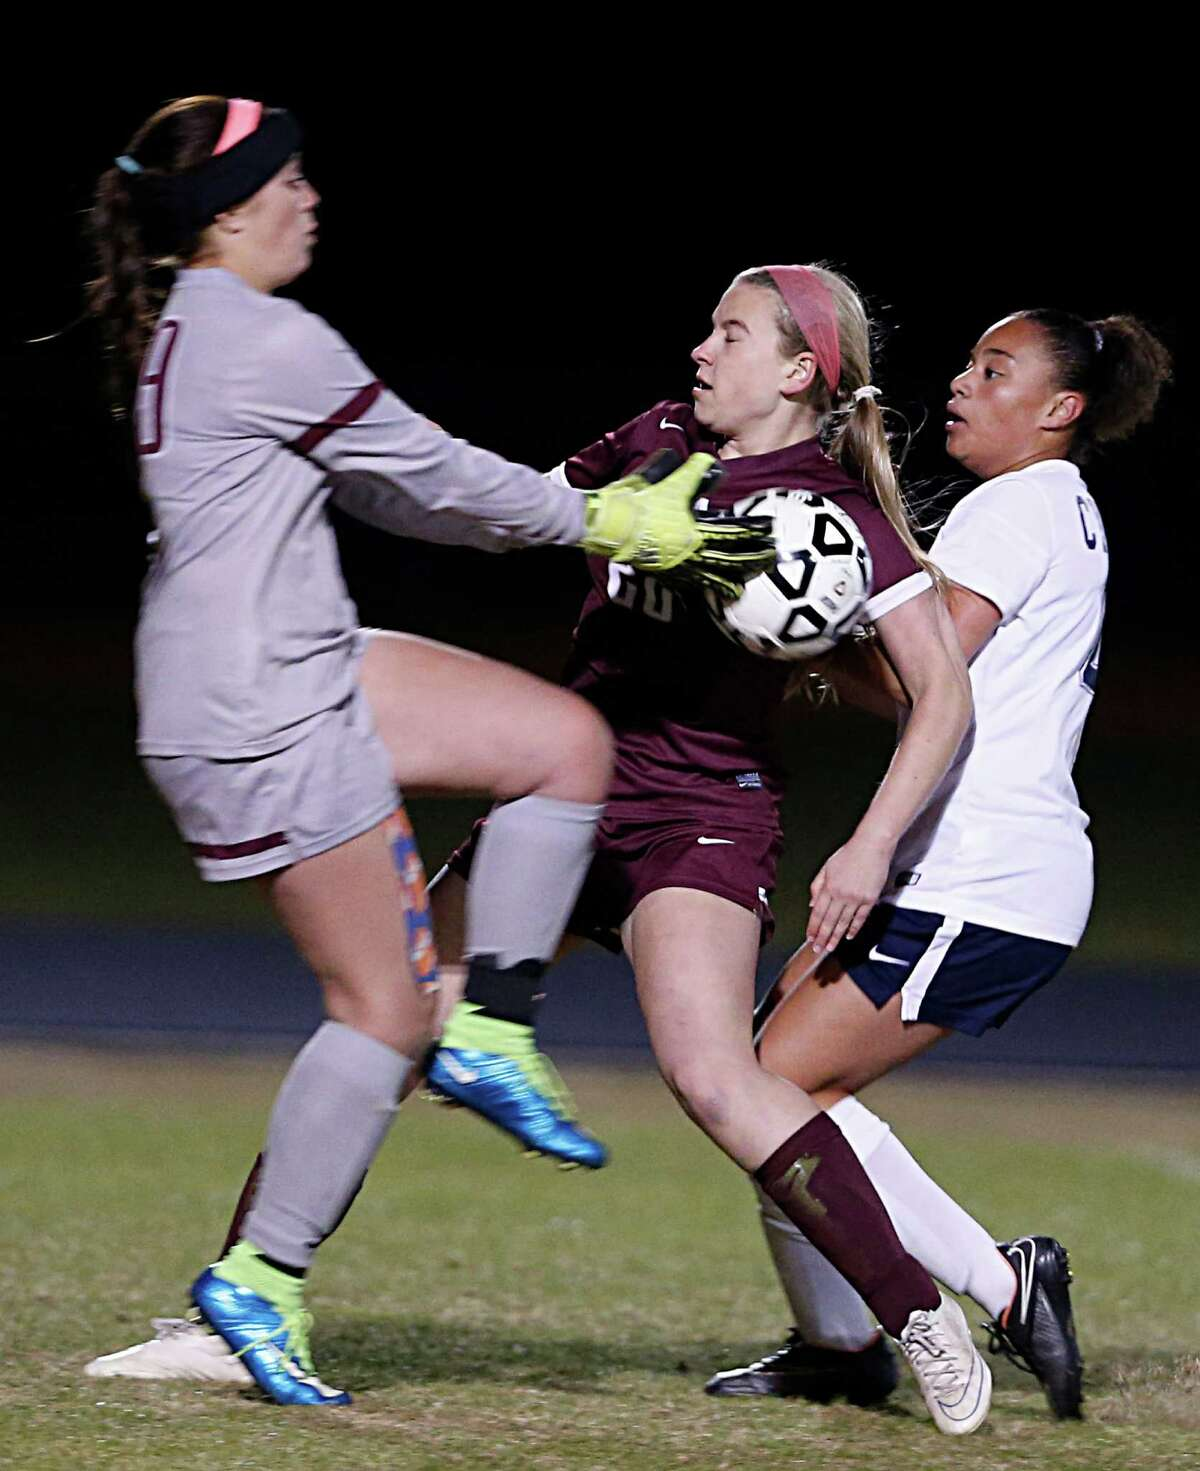 Cy-Fair's goal keeper Kennedy McGill left, blocks a shot as teammate Mackenzie Booth center, collides with Cy Ranch's Alyssa Austin right, during the second half of girls high school game action at Cypress Ranch High School Tuesday, Feb. 9, 2016, in Houston.